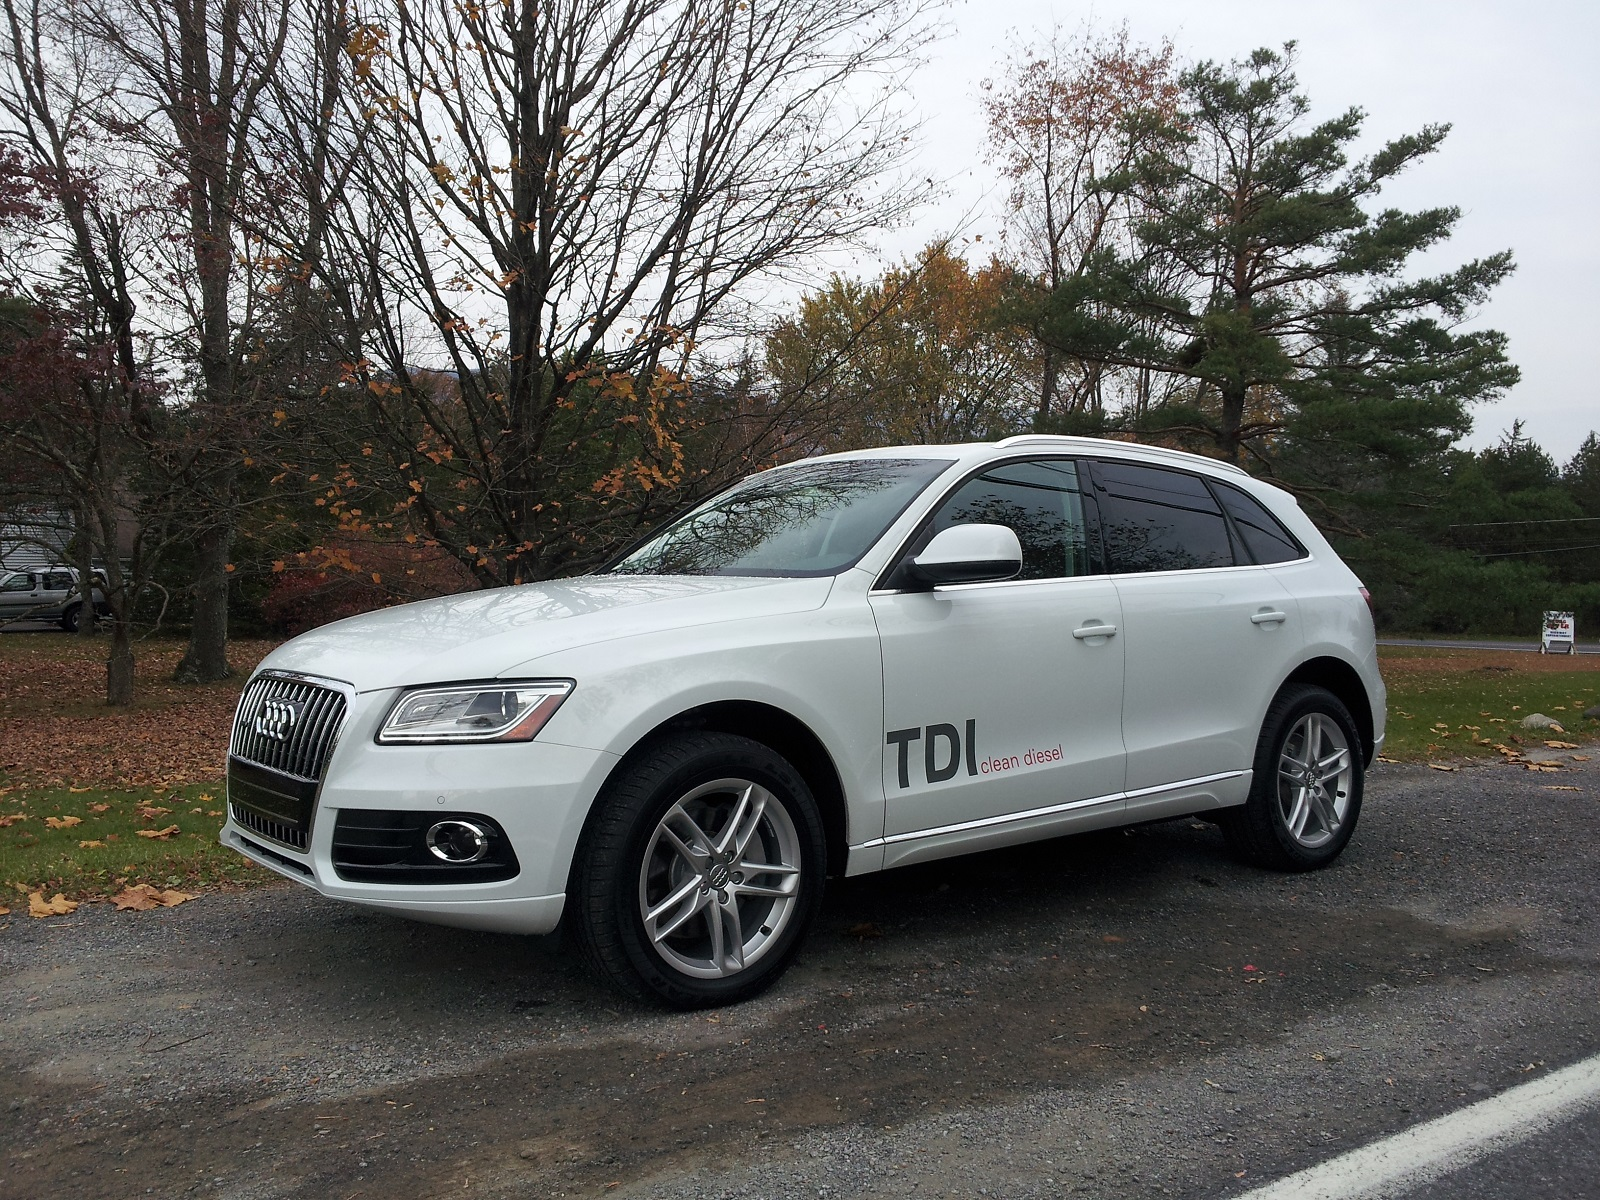 2014 audi q5 tdi diesel crossover fuel economy test. Black Bedroom Furniture Sets. Home Design Ideas